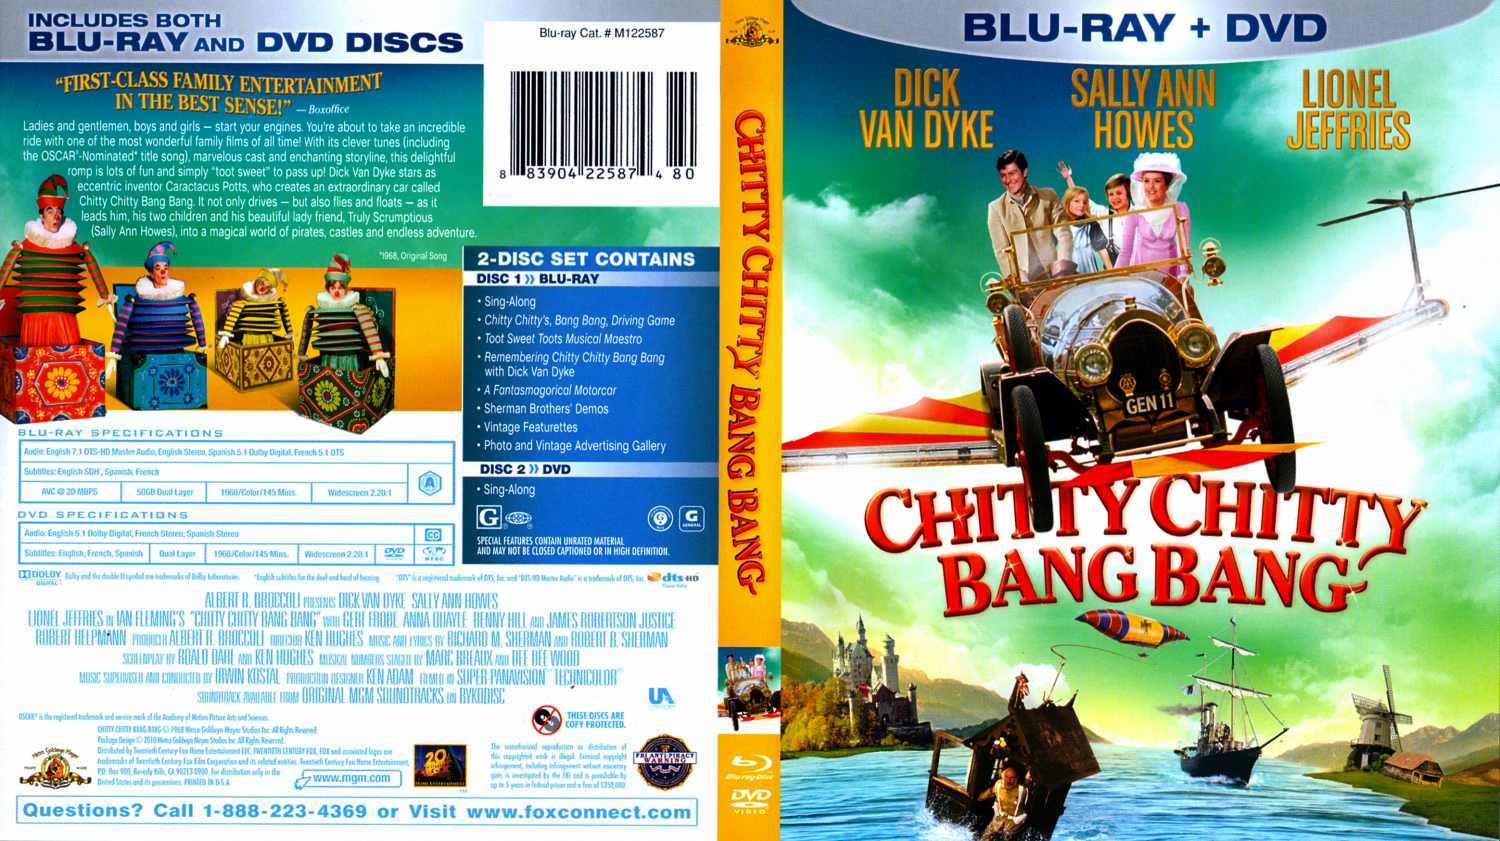 Chitty Chitty Bang Bang Soundtrack Chitty Chitty Bang Bang Dvd